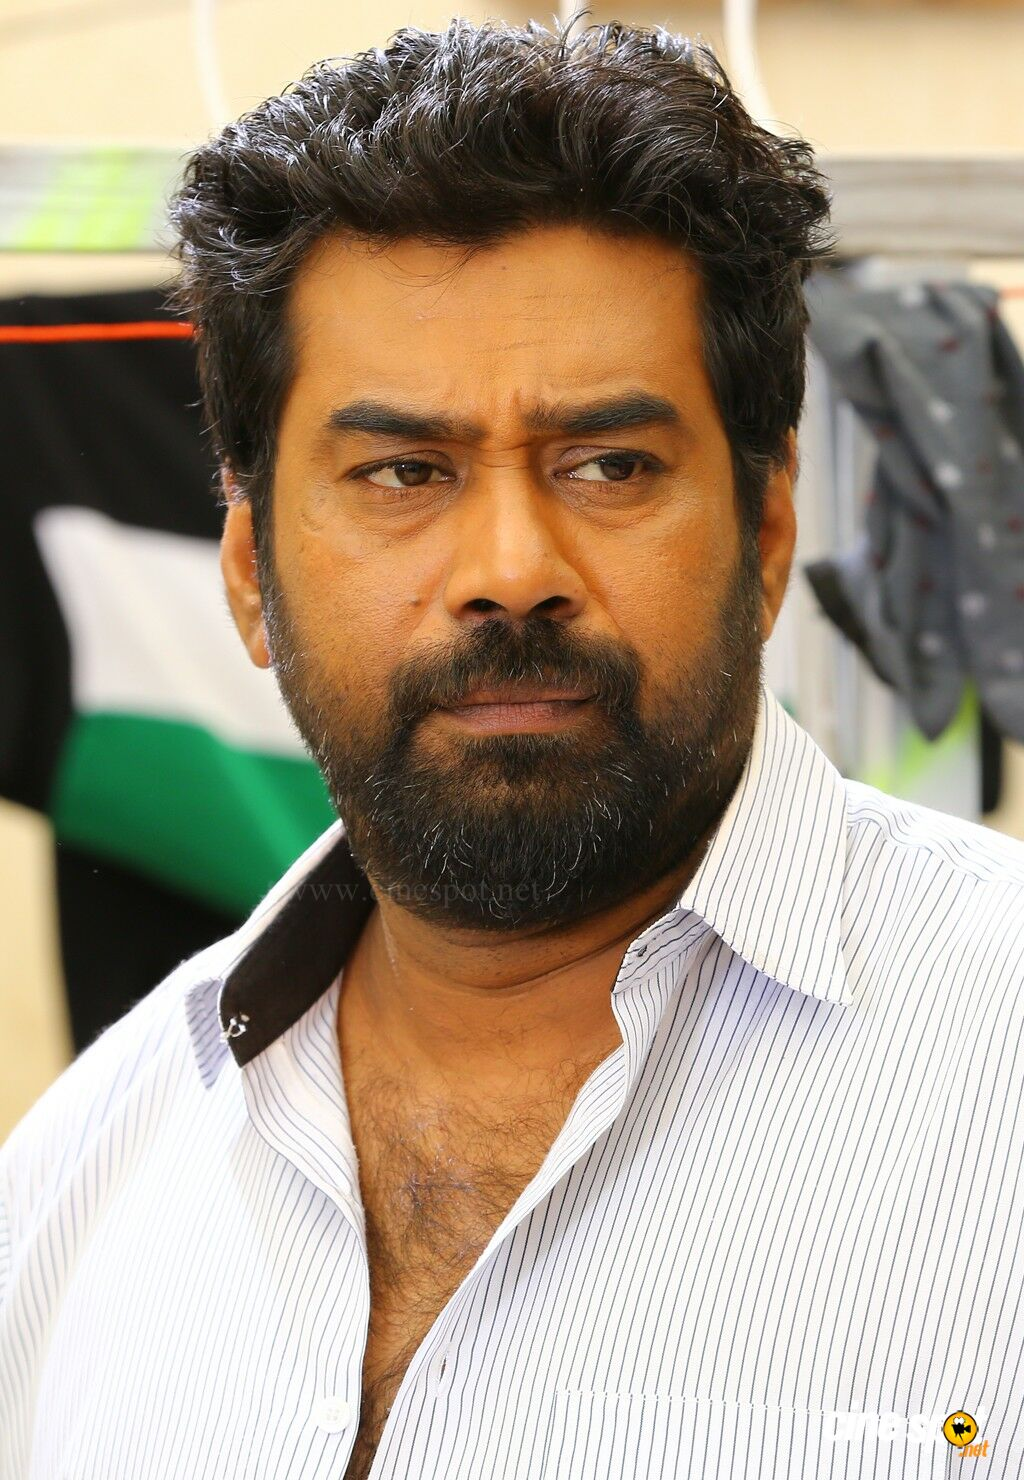 biju menon latest moviebiju menon movies, biju menon new movies, biju menon comedy, biju menon family, biju menon wife, biju menon comedy movies, biju menon latest movie, biju menon dileep, biju menon asif ali, biju menon movie list, biju menon capital one, biju menon house, biju menon malayalam movies, biju menon leela, biju menon new movie 2016, biju menon hit movies, biju menon facebook, biju menon samyuktha varma, biju menon house photos, biju menon asif ali movies